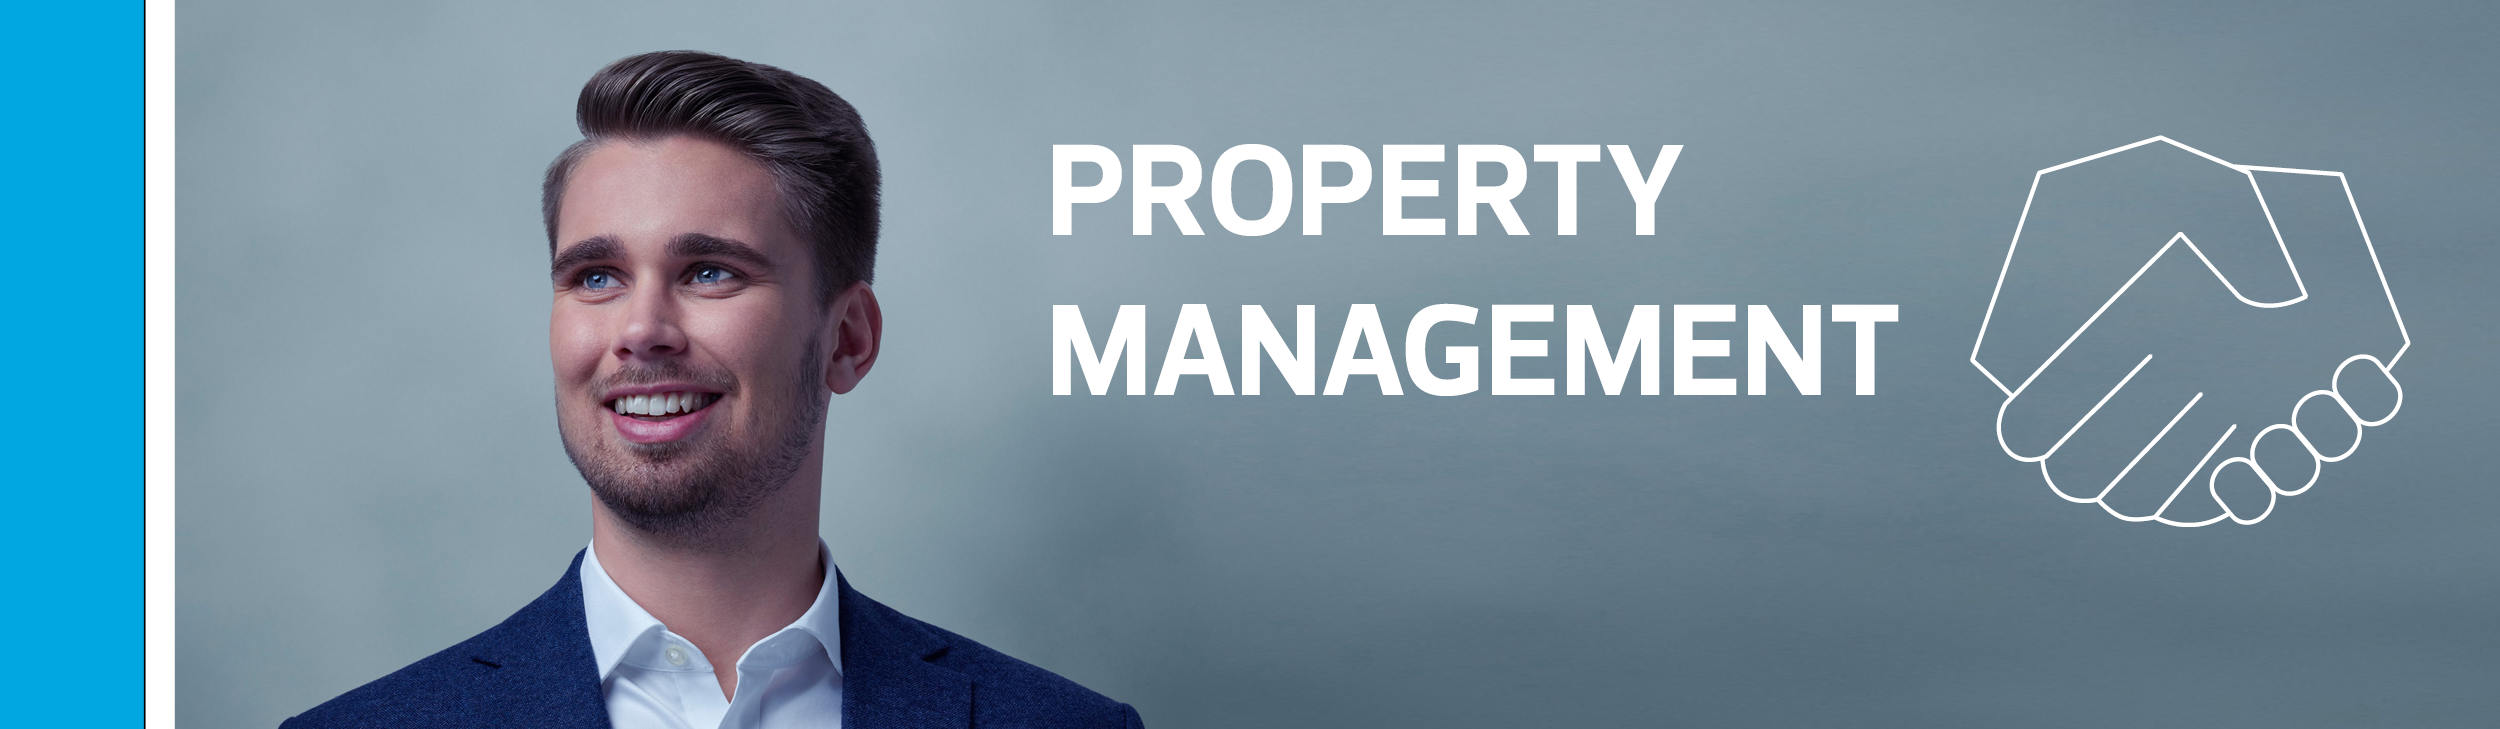 Property Management Businesss Services